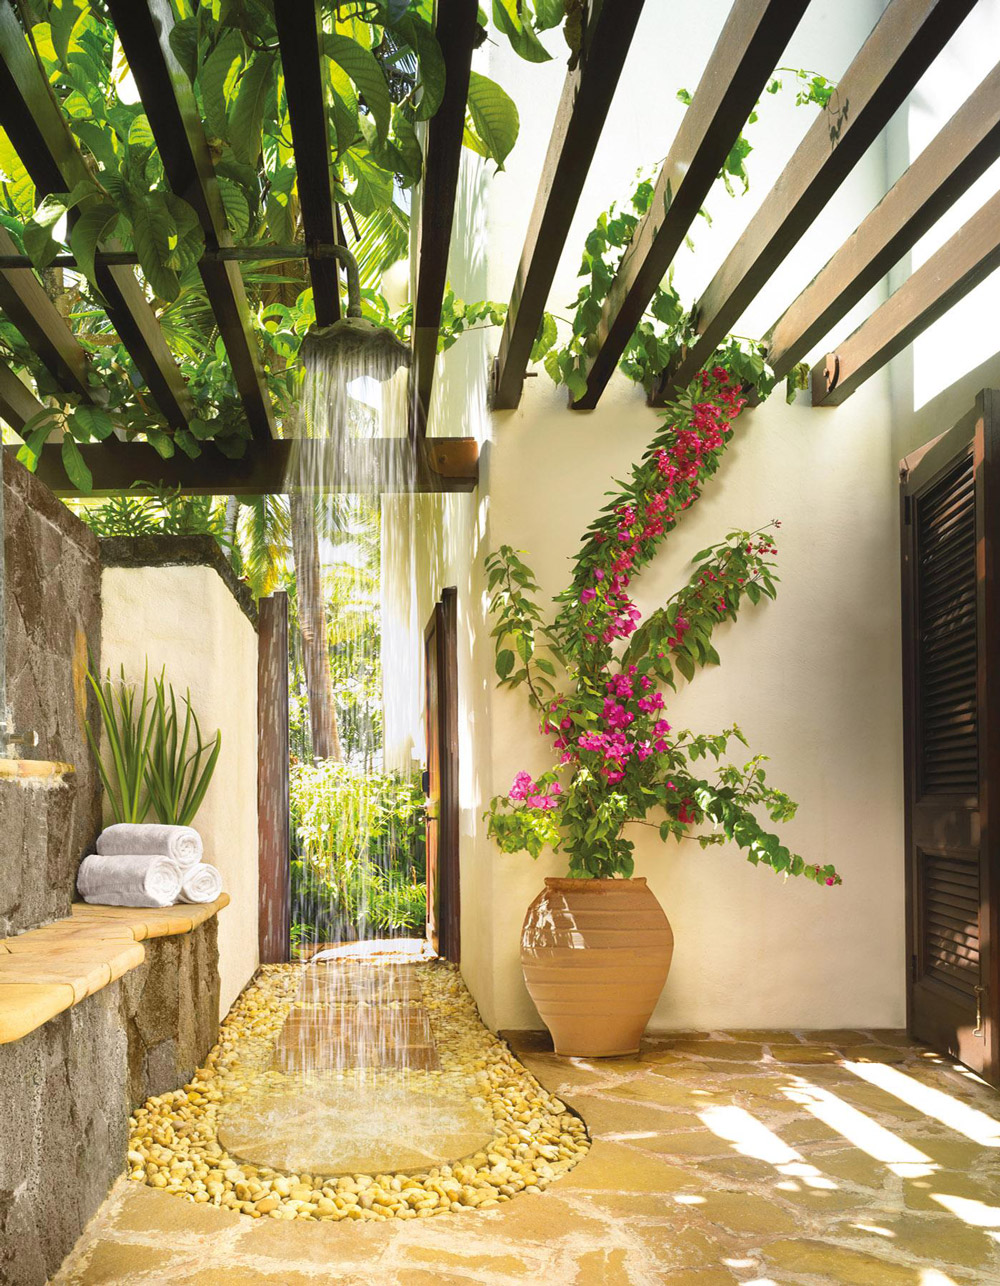 Slatted Flowers Outdoor Shower Head - 50 stunning outdoor shower spaces that take you to urban paradise